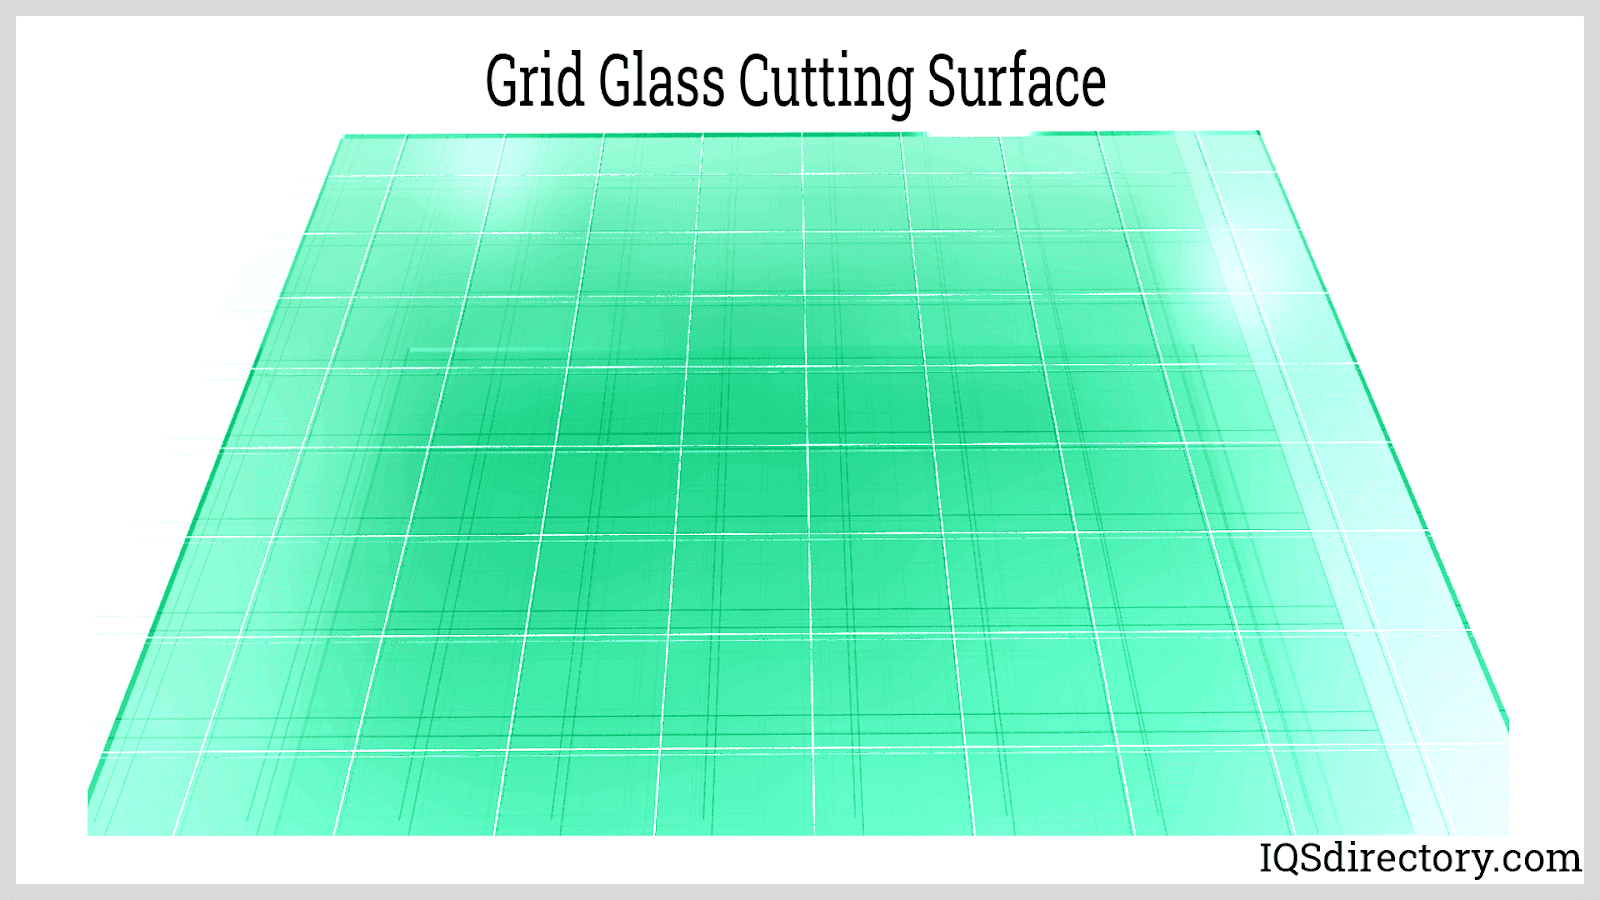 Grid Glass Cutting Surface